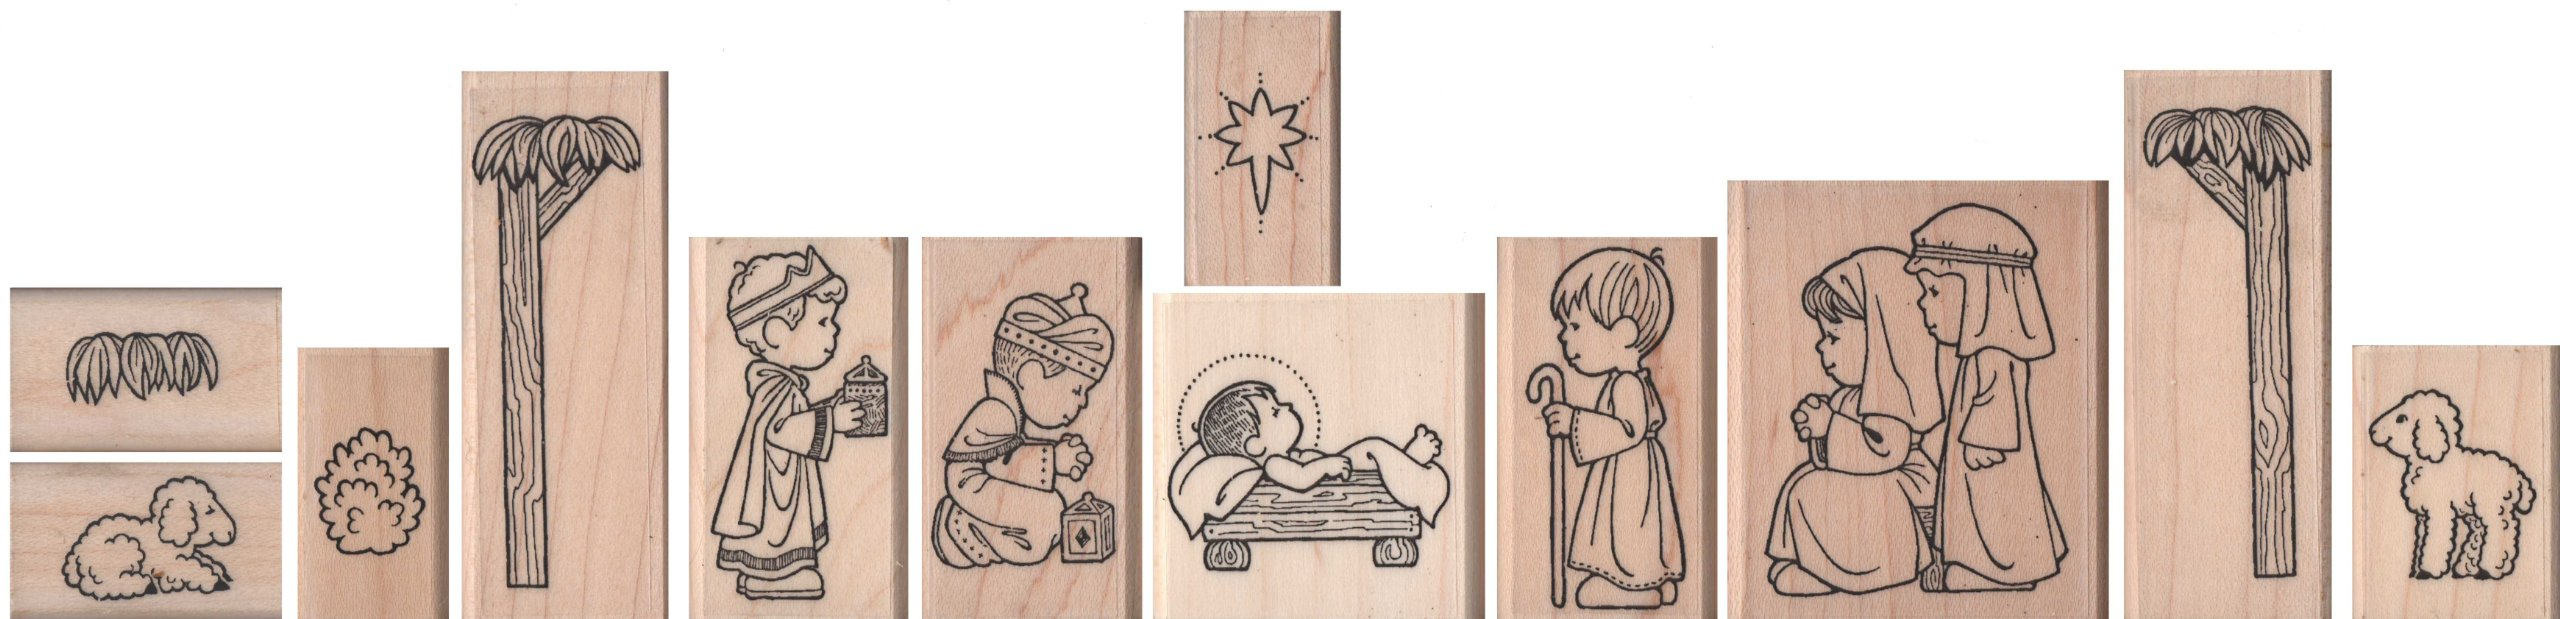 Christmas Nativity Rubber Stamps for Children - Set of 12 by Stamps by Impression